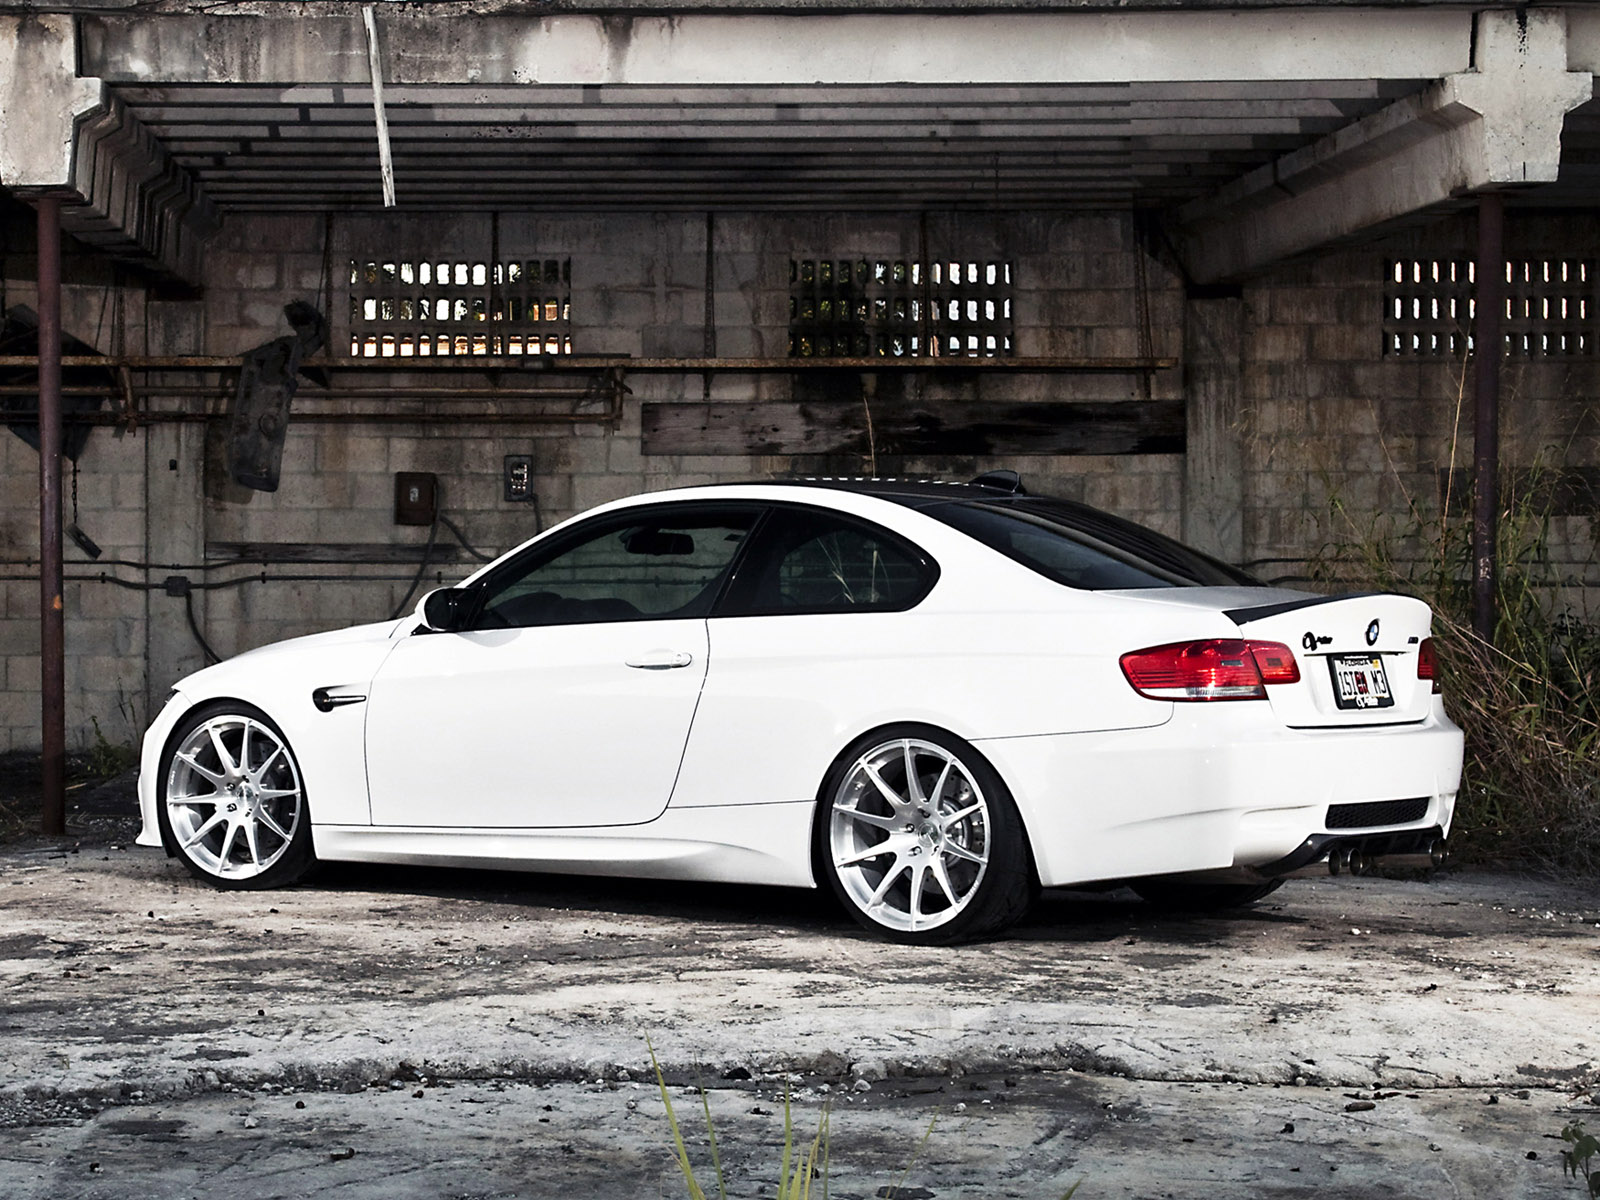 bmw m3 coupe active autowerke e92 2009 bmw m3 coupe active autowerke e92 2009 photo 04 car in. Black Bedroom Furniture Sets. Home Design Ideas